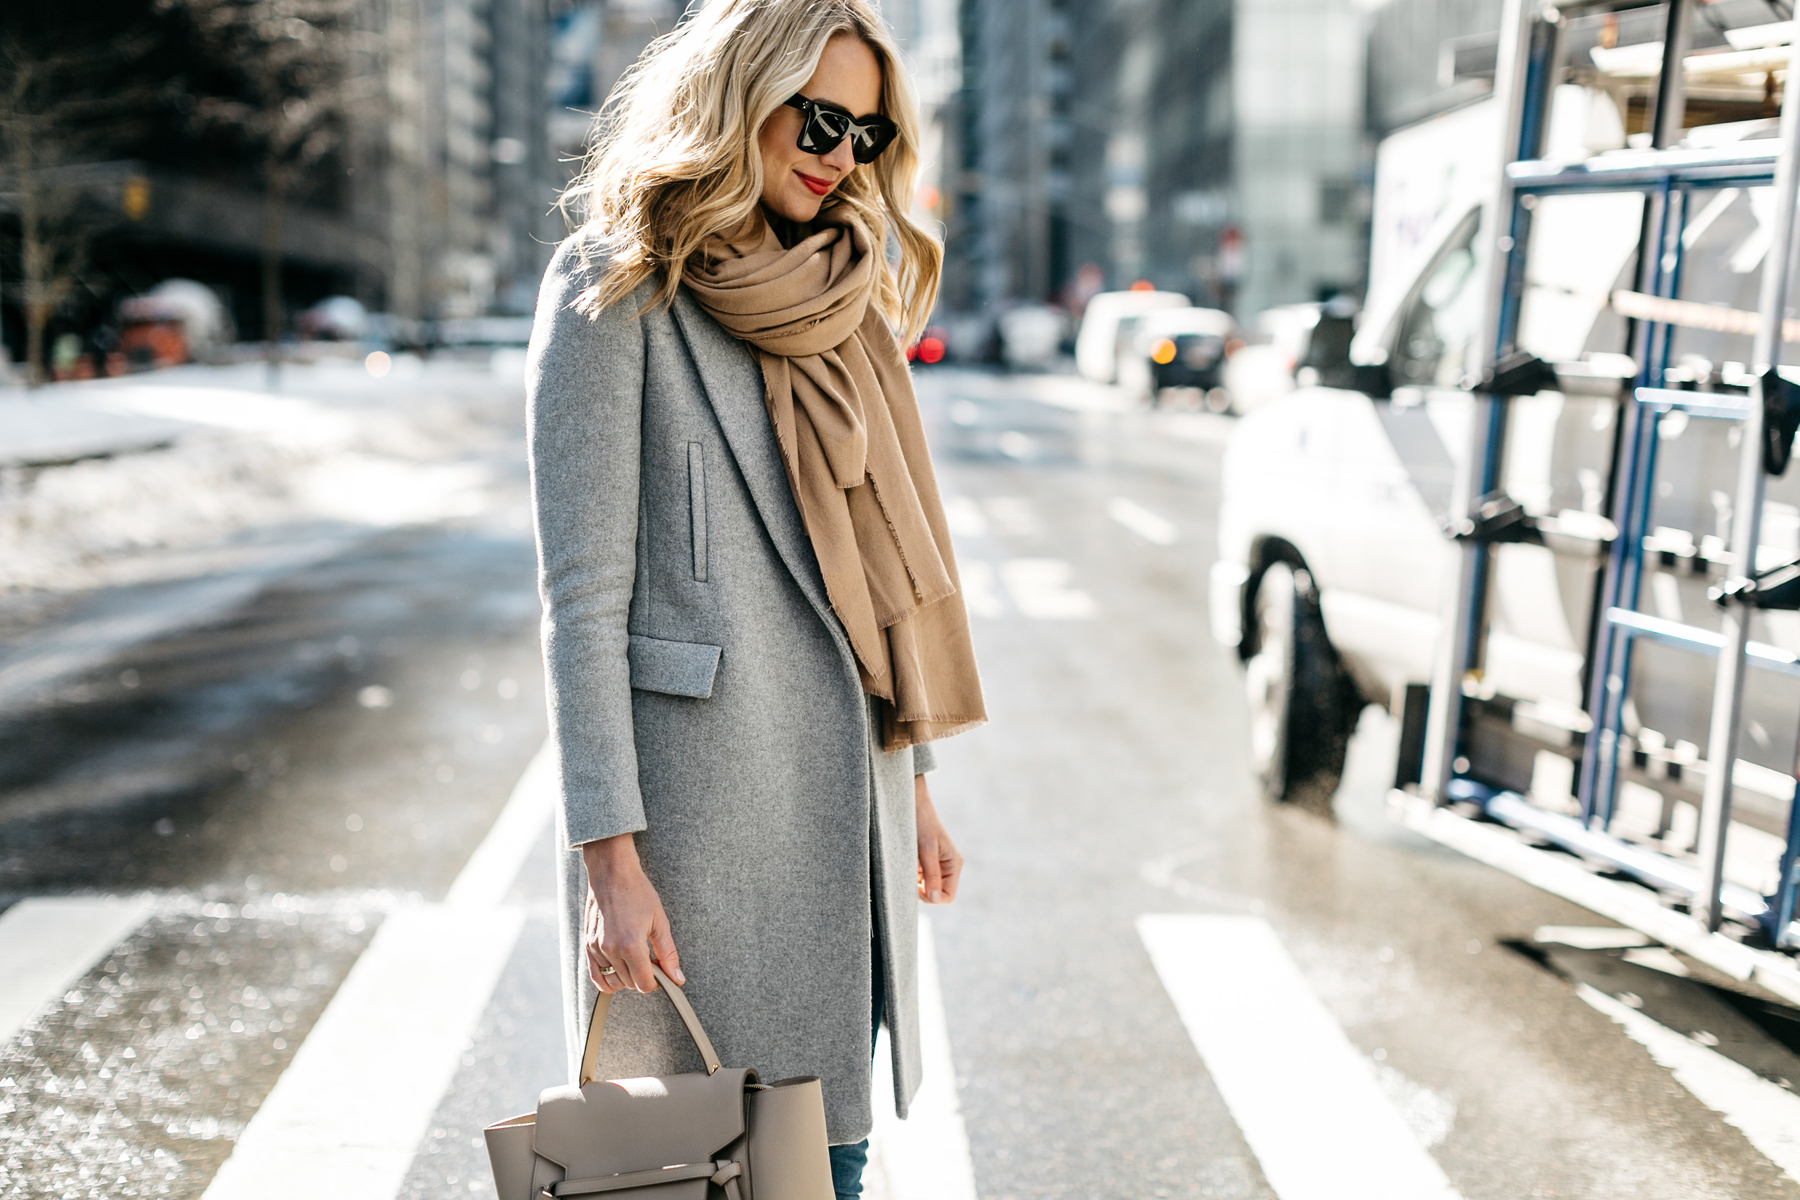 NYFW Fall/Winter 2017, Street Style, Grey Coat, Tan Blanket Scarf, Celine Tie Handbag